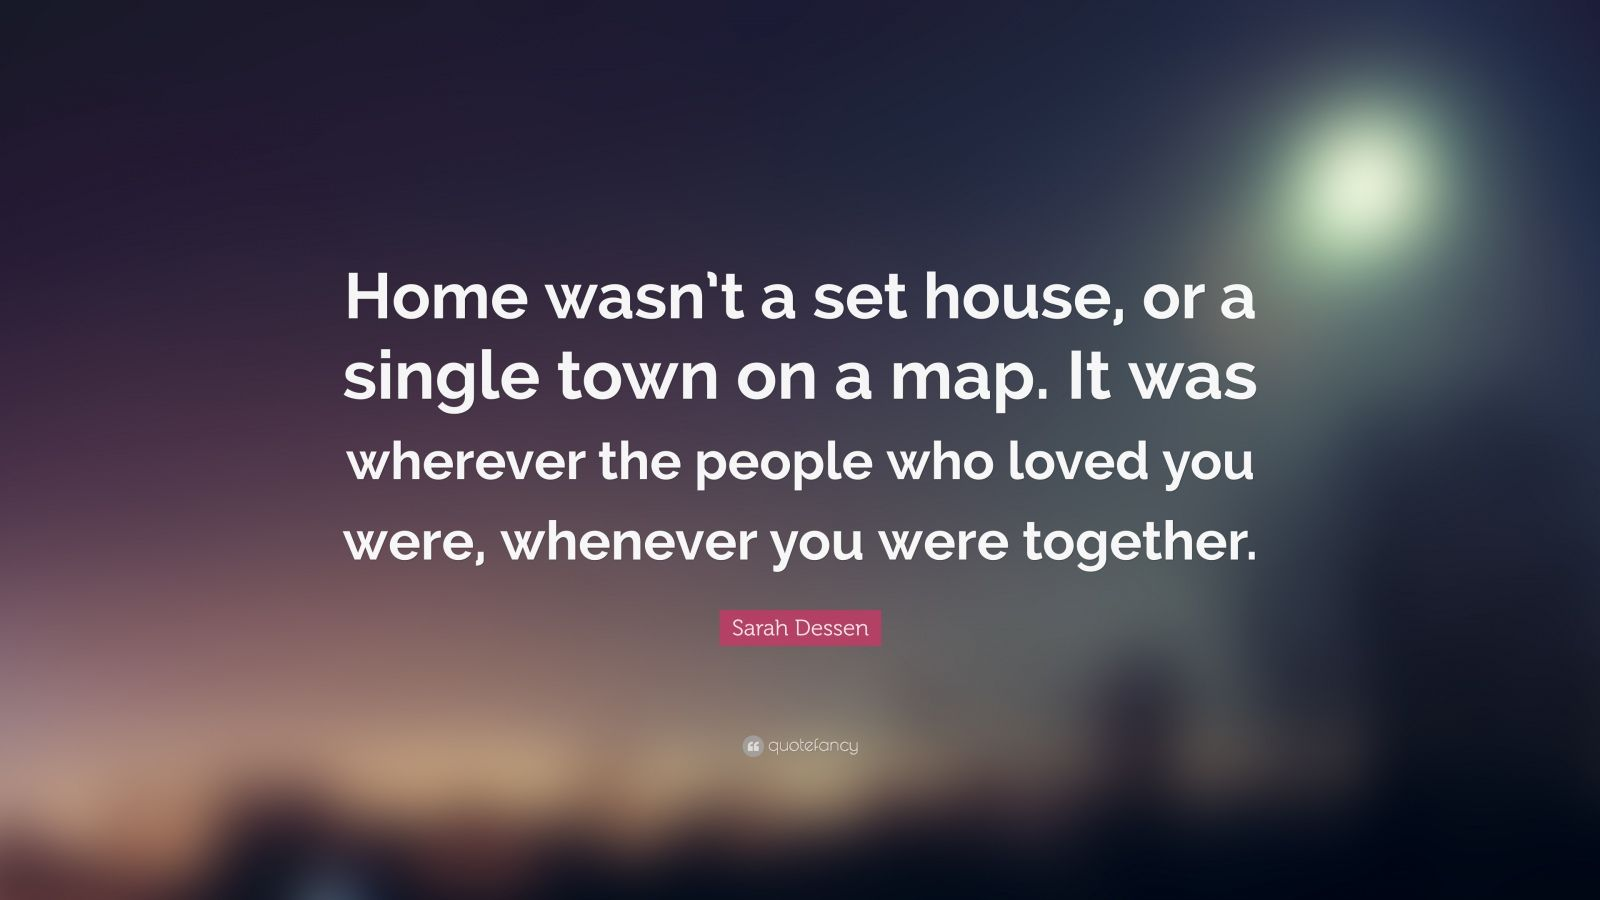 """Sarah Dessen Quote: """"Home wasn't a set house, or a single town on a map. It was wherever the people who loved you were, whenever you were together."""""""